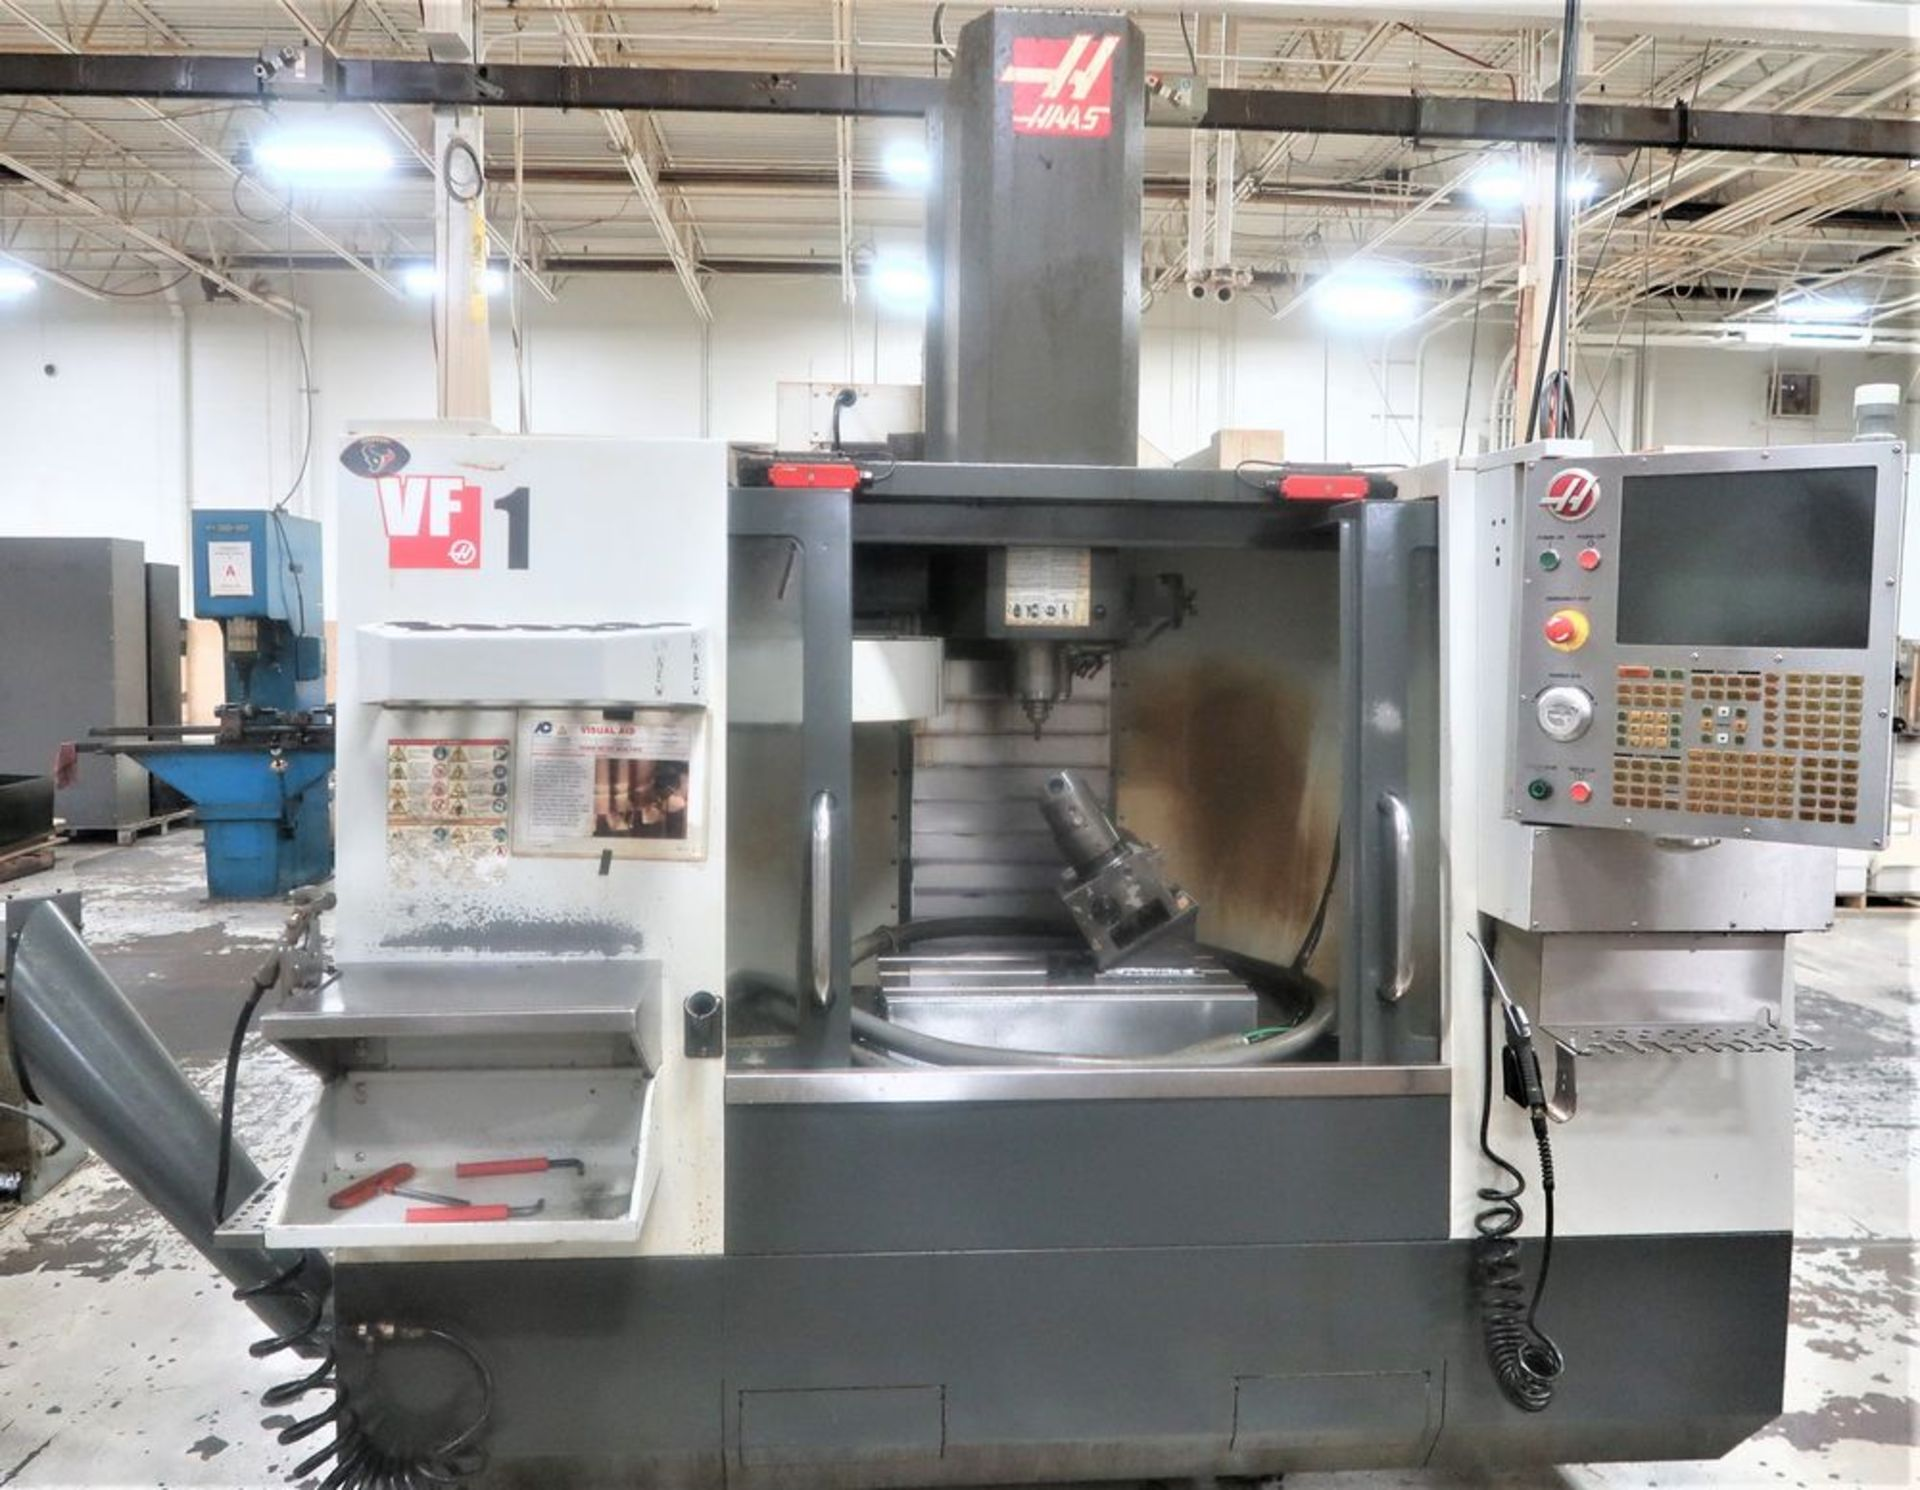 Lot 22 - Haas VF1 4-Axis CNC Vertical Machining Center, S/N 1115051, New 2014